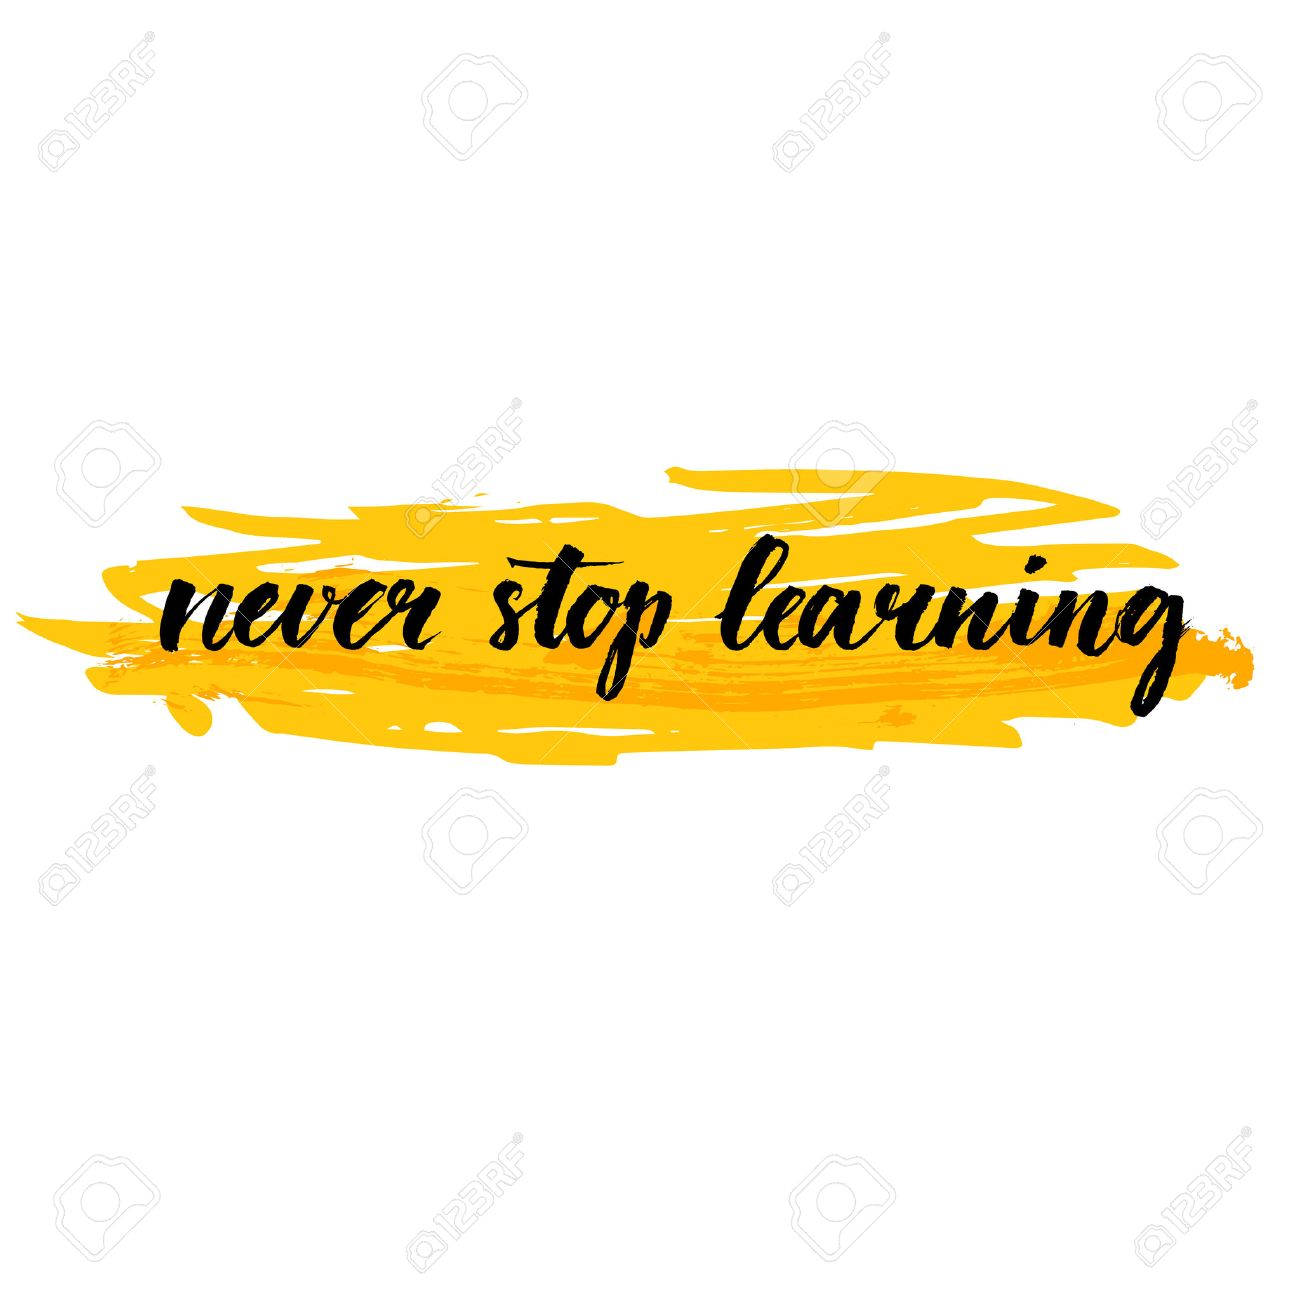 Never Stop Learning. Motivational Quote About Education, Self ...